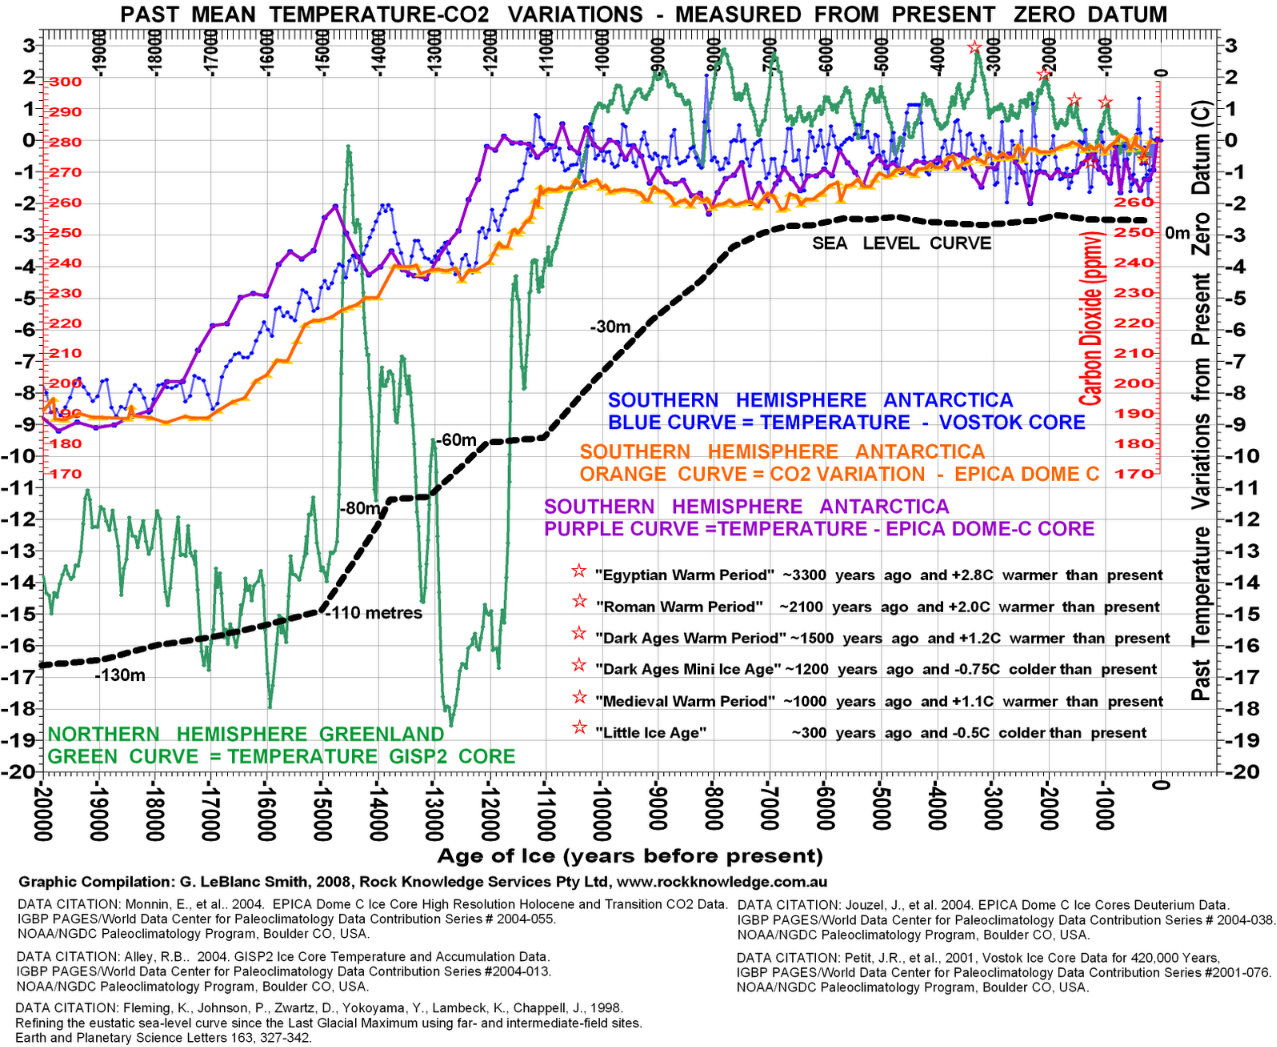 [Image: past+mean+temp+co2+sea+level+variations.jpg]